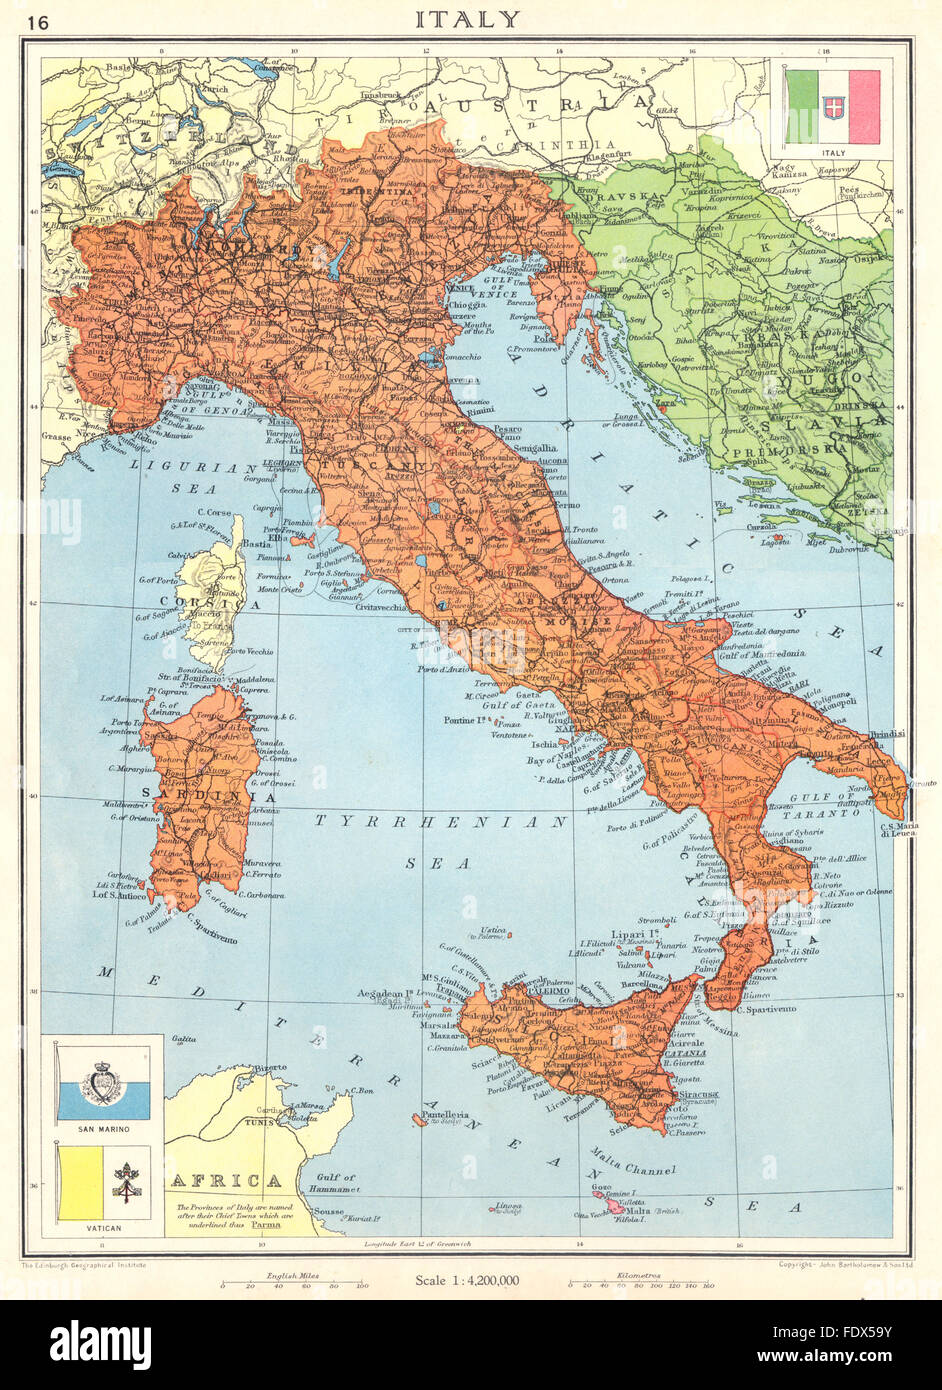 Italy shortly before world war 2 includes istria zarazadar stock italy shortly before world war 2 includes istria zarazadar lagosta 1938 map gumiabroncs Gallery